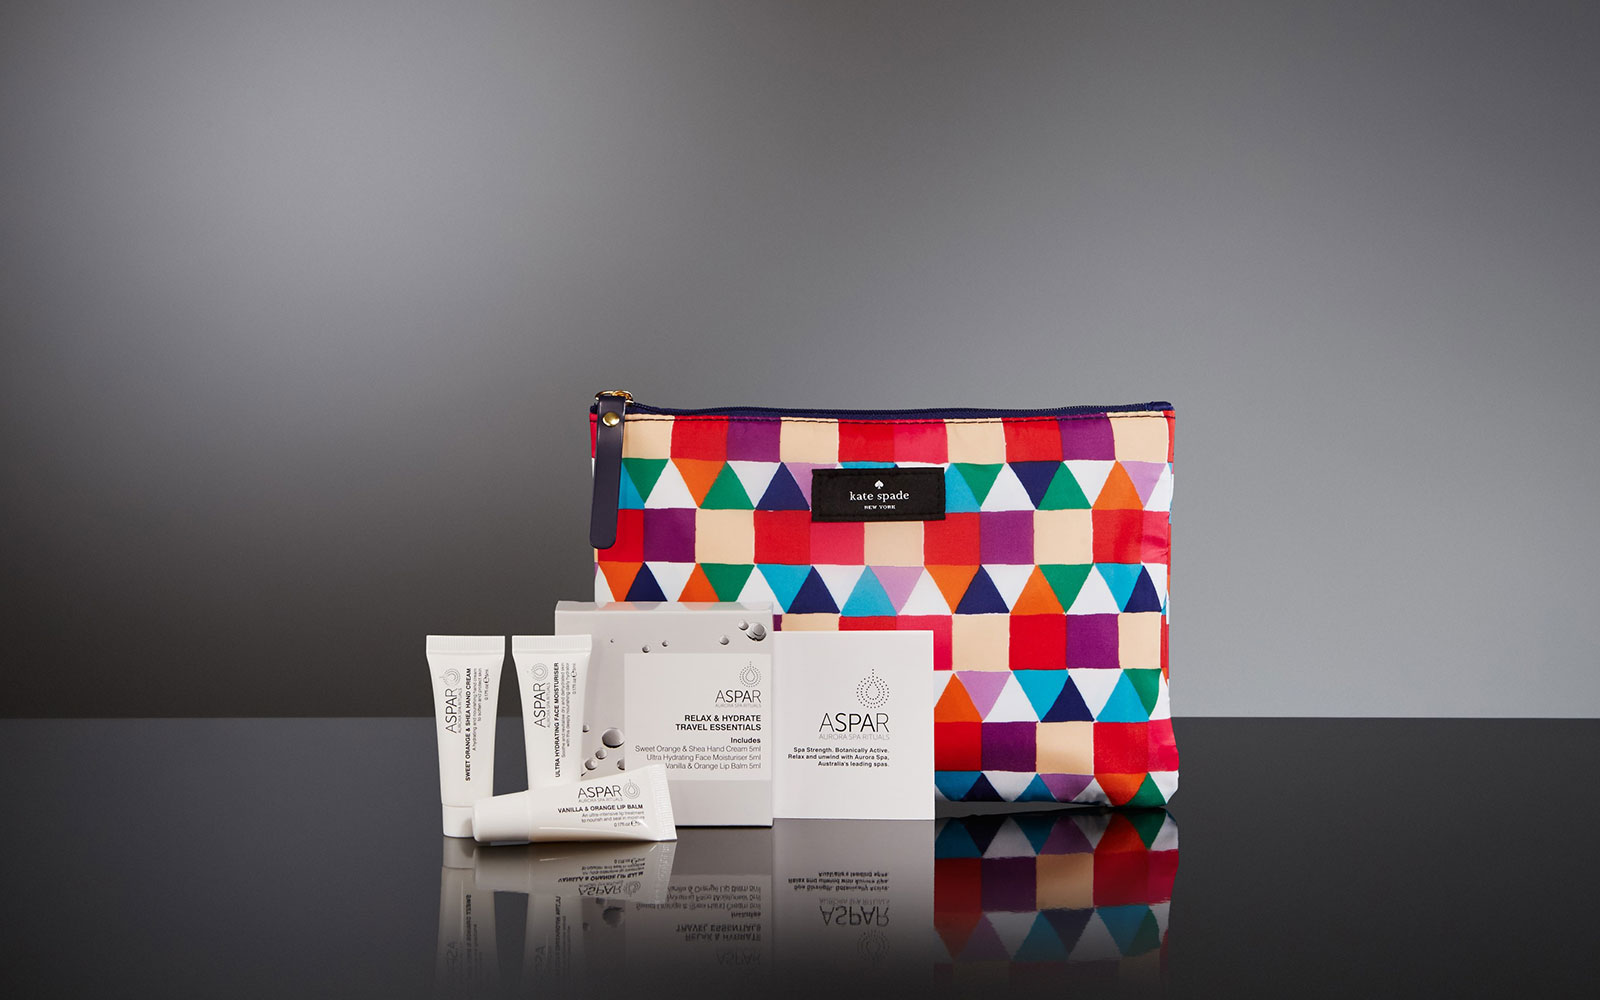 Qantas: Business Class Jack and Kate Spade Amenity Kits